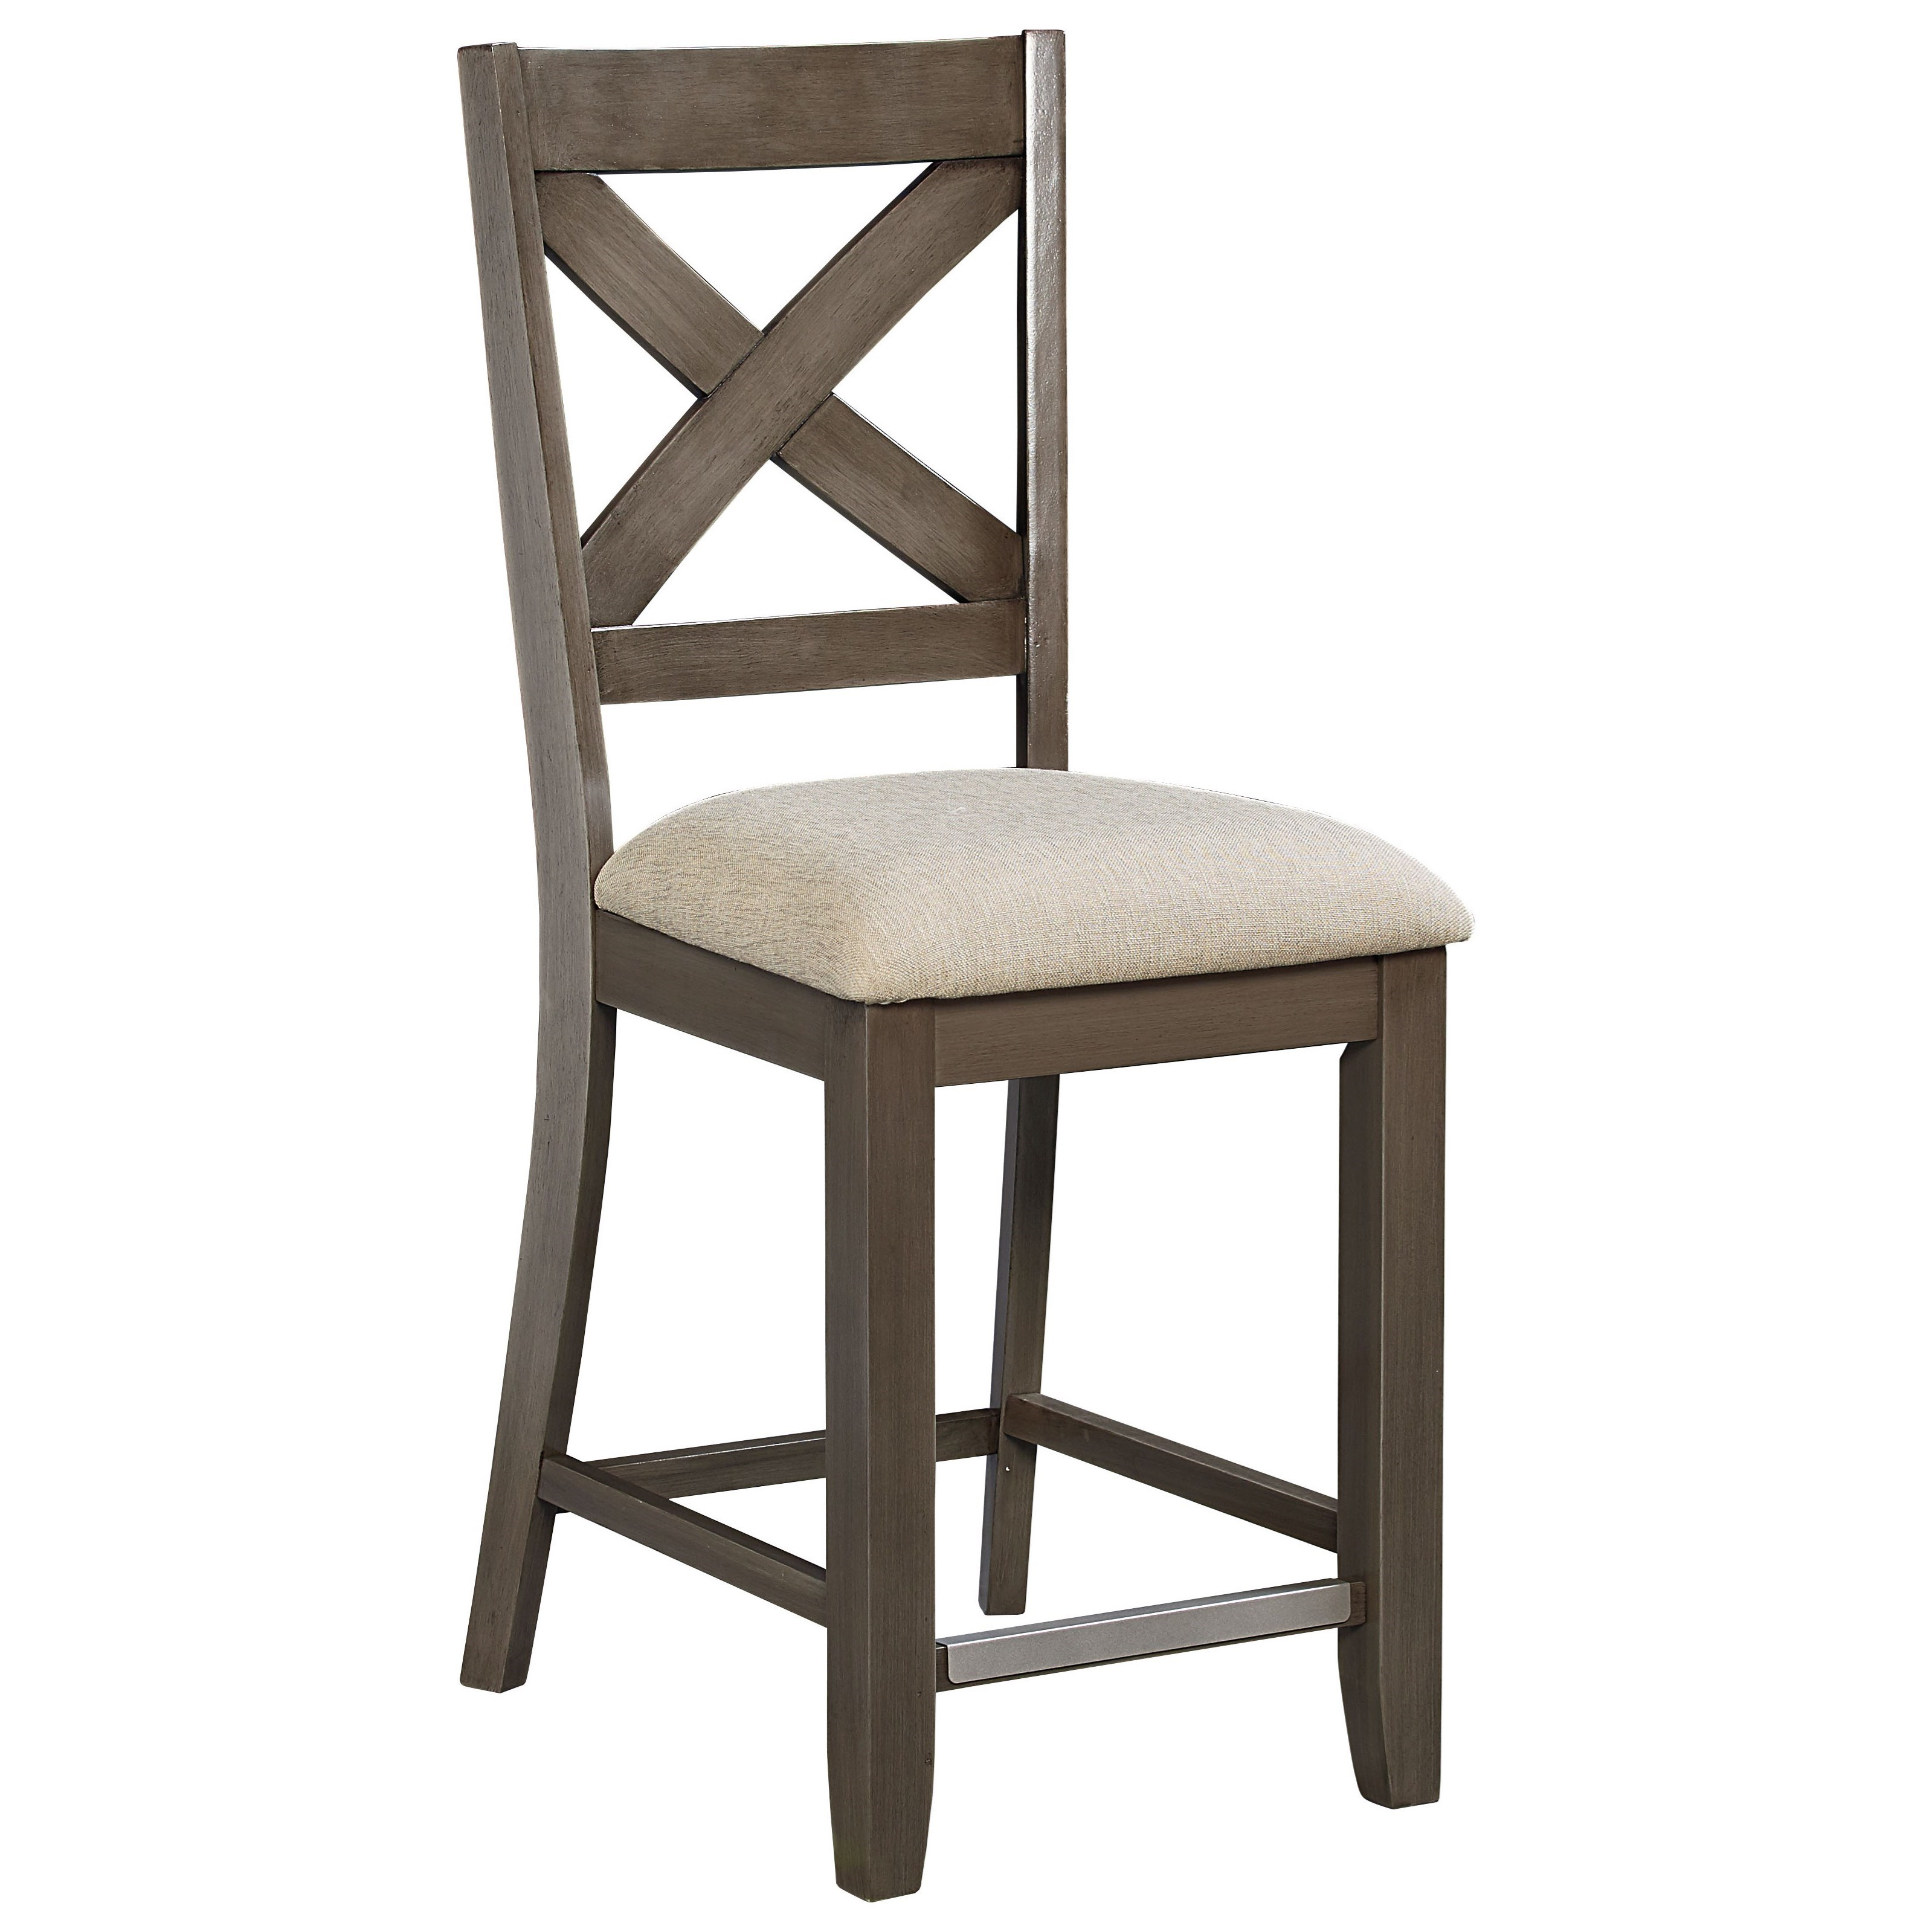 Tremendous Counter Height Bar Stool With X Back By Standard Furniture Unemploymentrelief Wooden Chair Designs For Living Room Unemploymentrelieforg